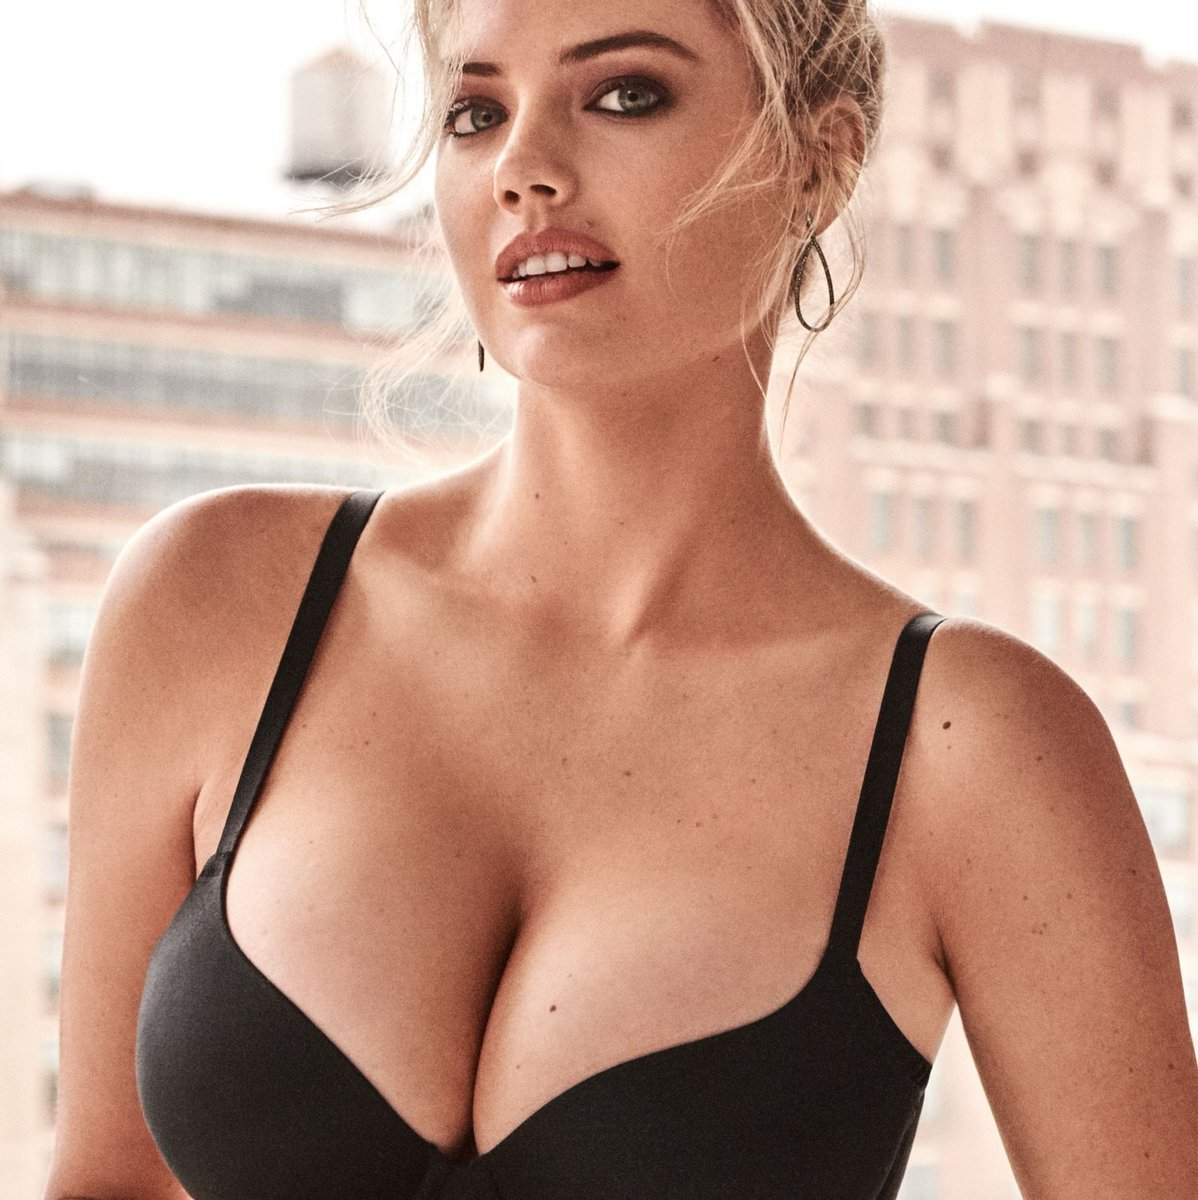 Kate Upton's Breasts